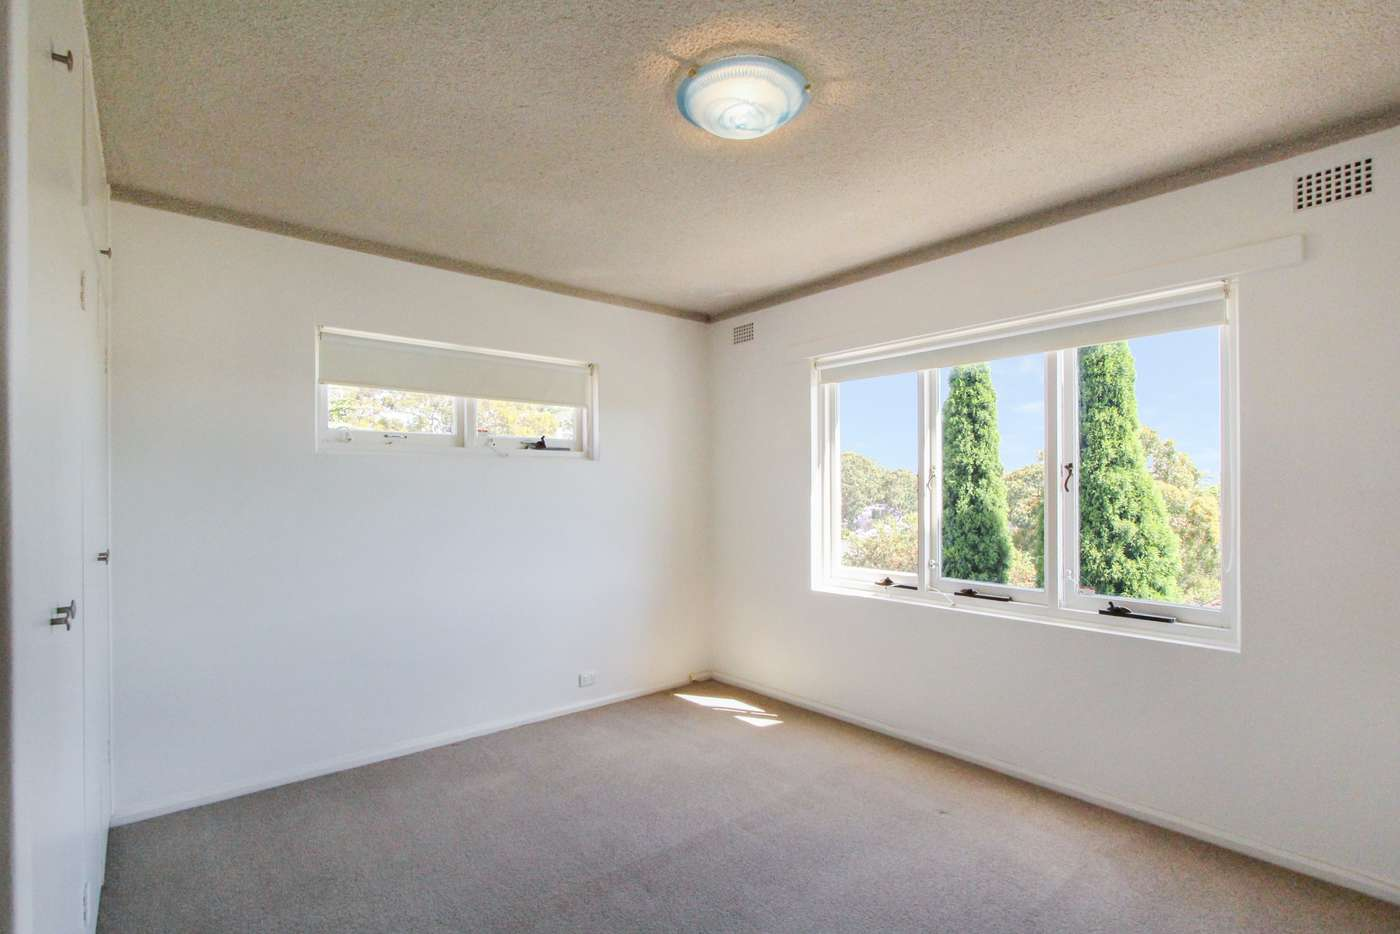 Sixth view of Homely unit listing, 3/16 Church Street, Hunters Hill NSW 2110